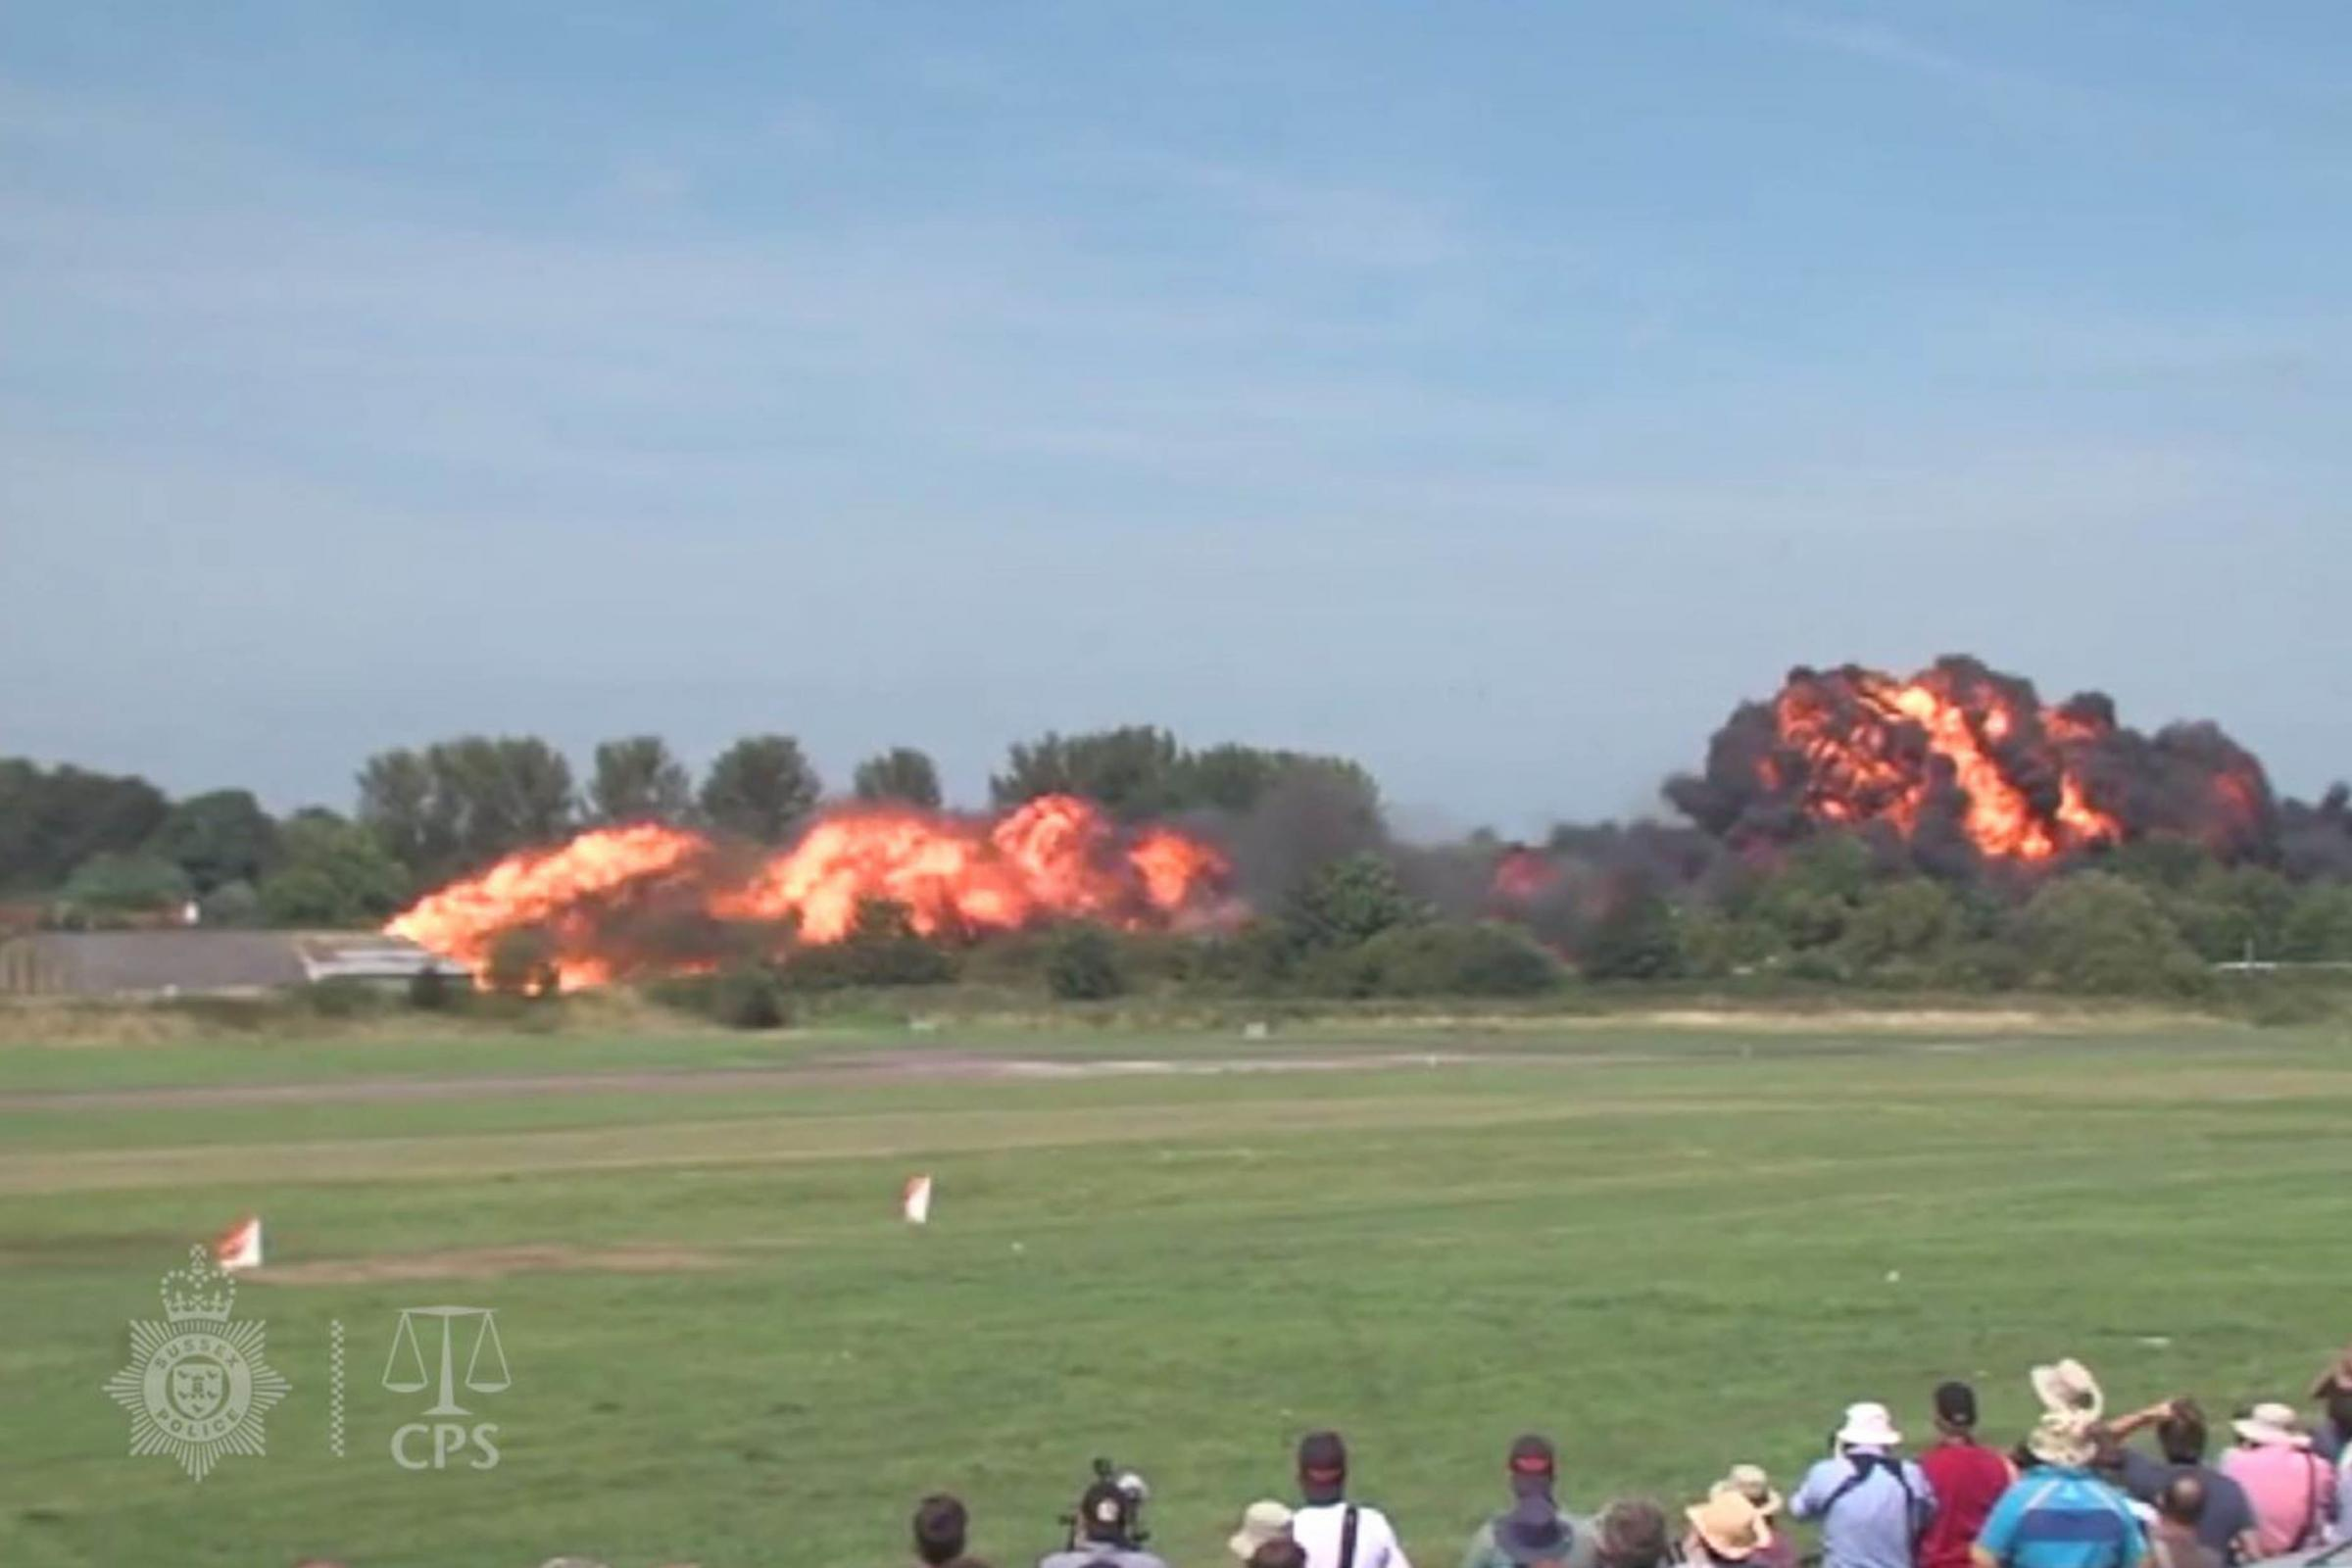 The crash during the Shoreham Airshow on August 22 2015